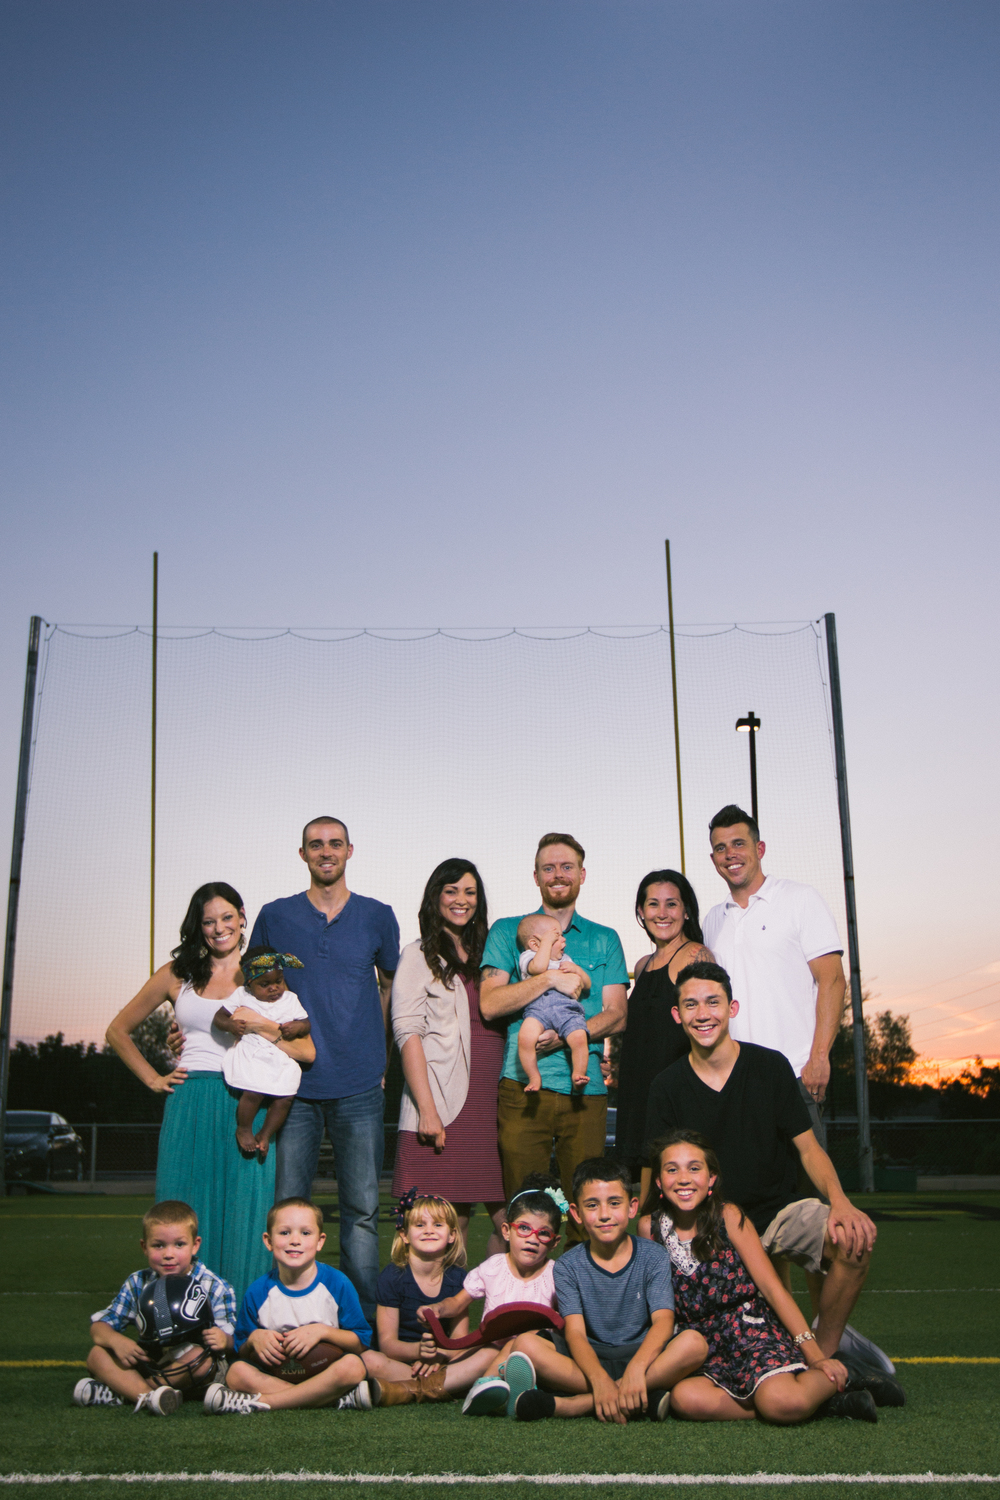 27FAMILY FOOTBALL FIELD.jpg